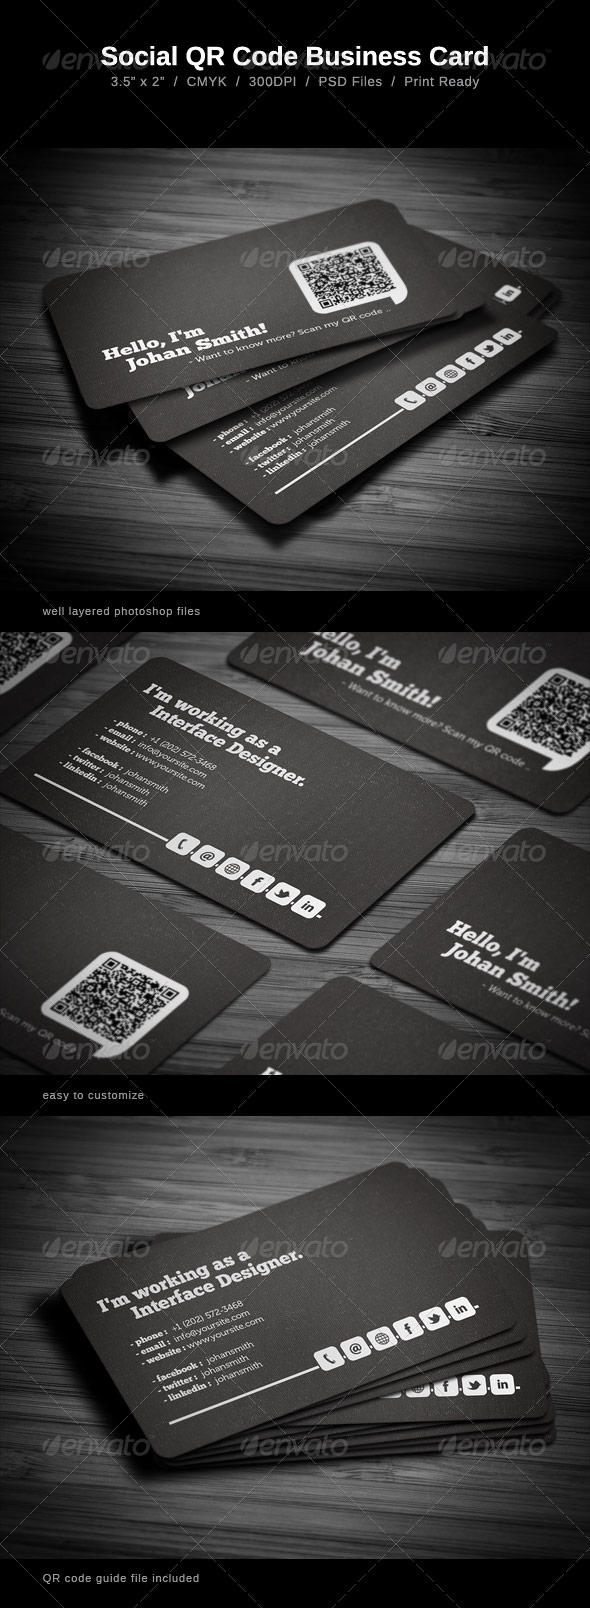 5 noteworthy back of business cards ideas business card qr back of card template reheart Gallery